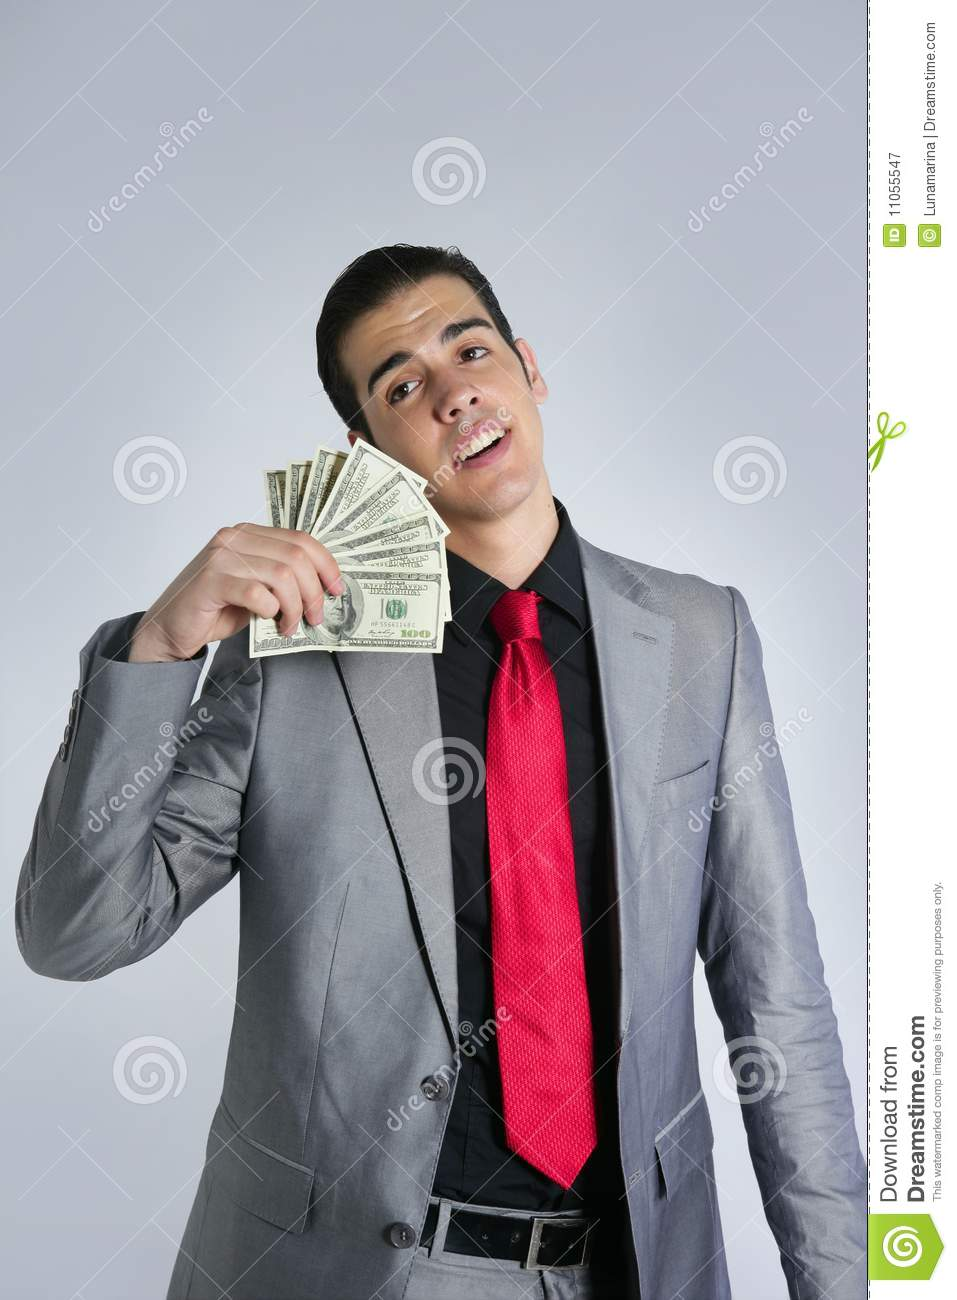 Download Businessman With Dollar Notes Suit And Tie Stock Image - Image of hands, model: 11055547